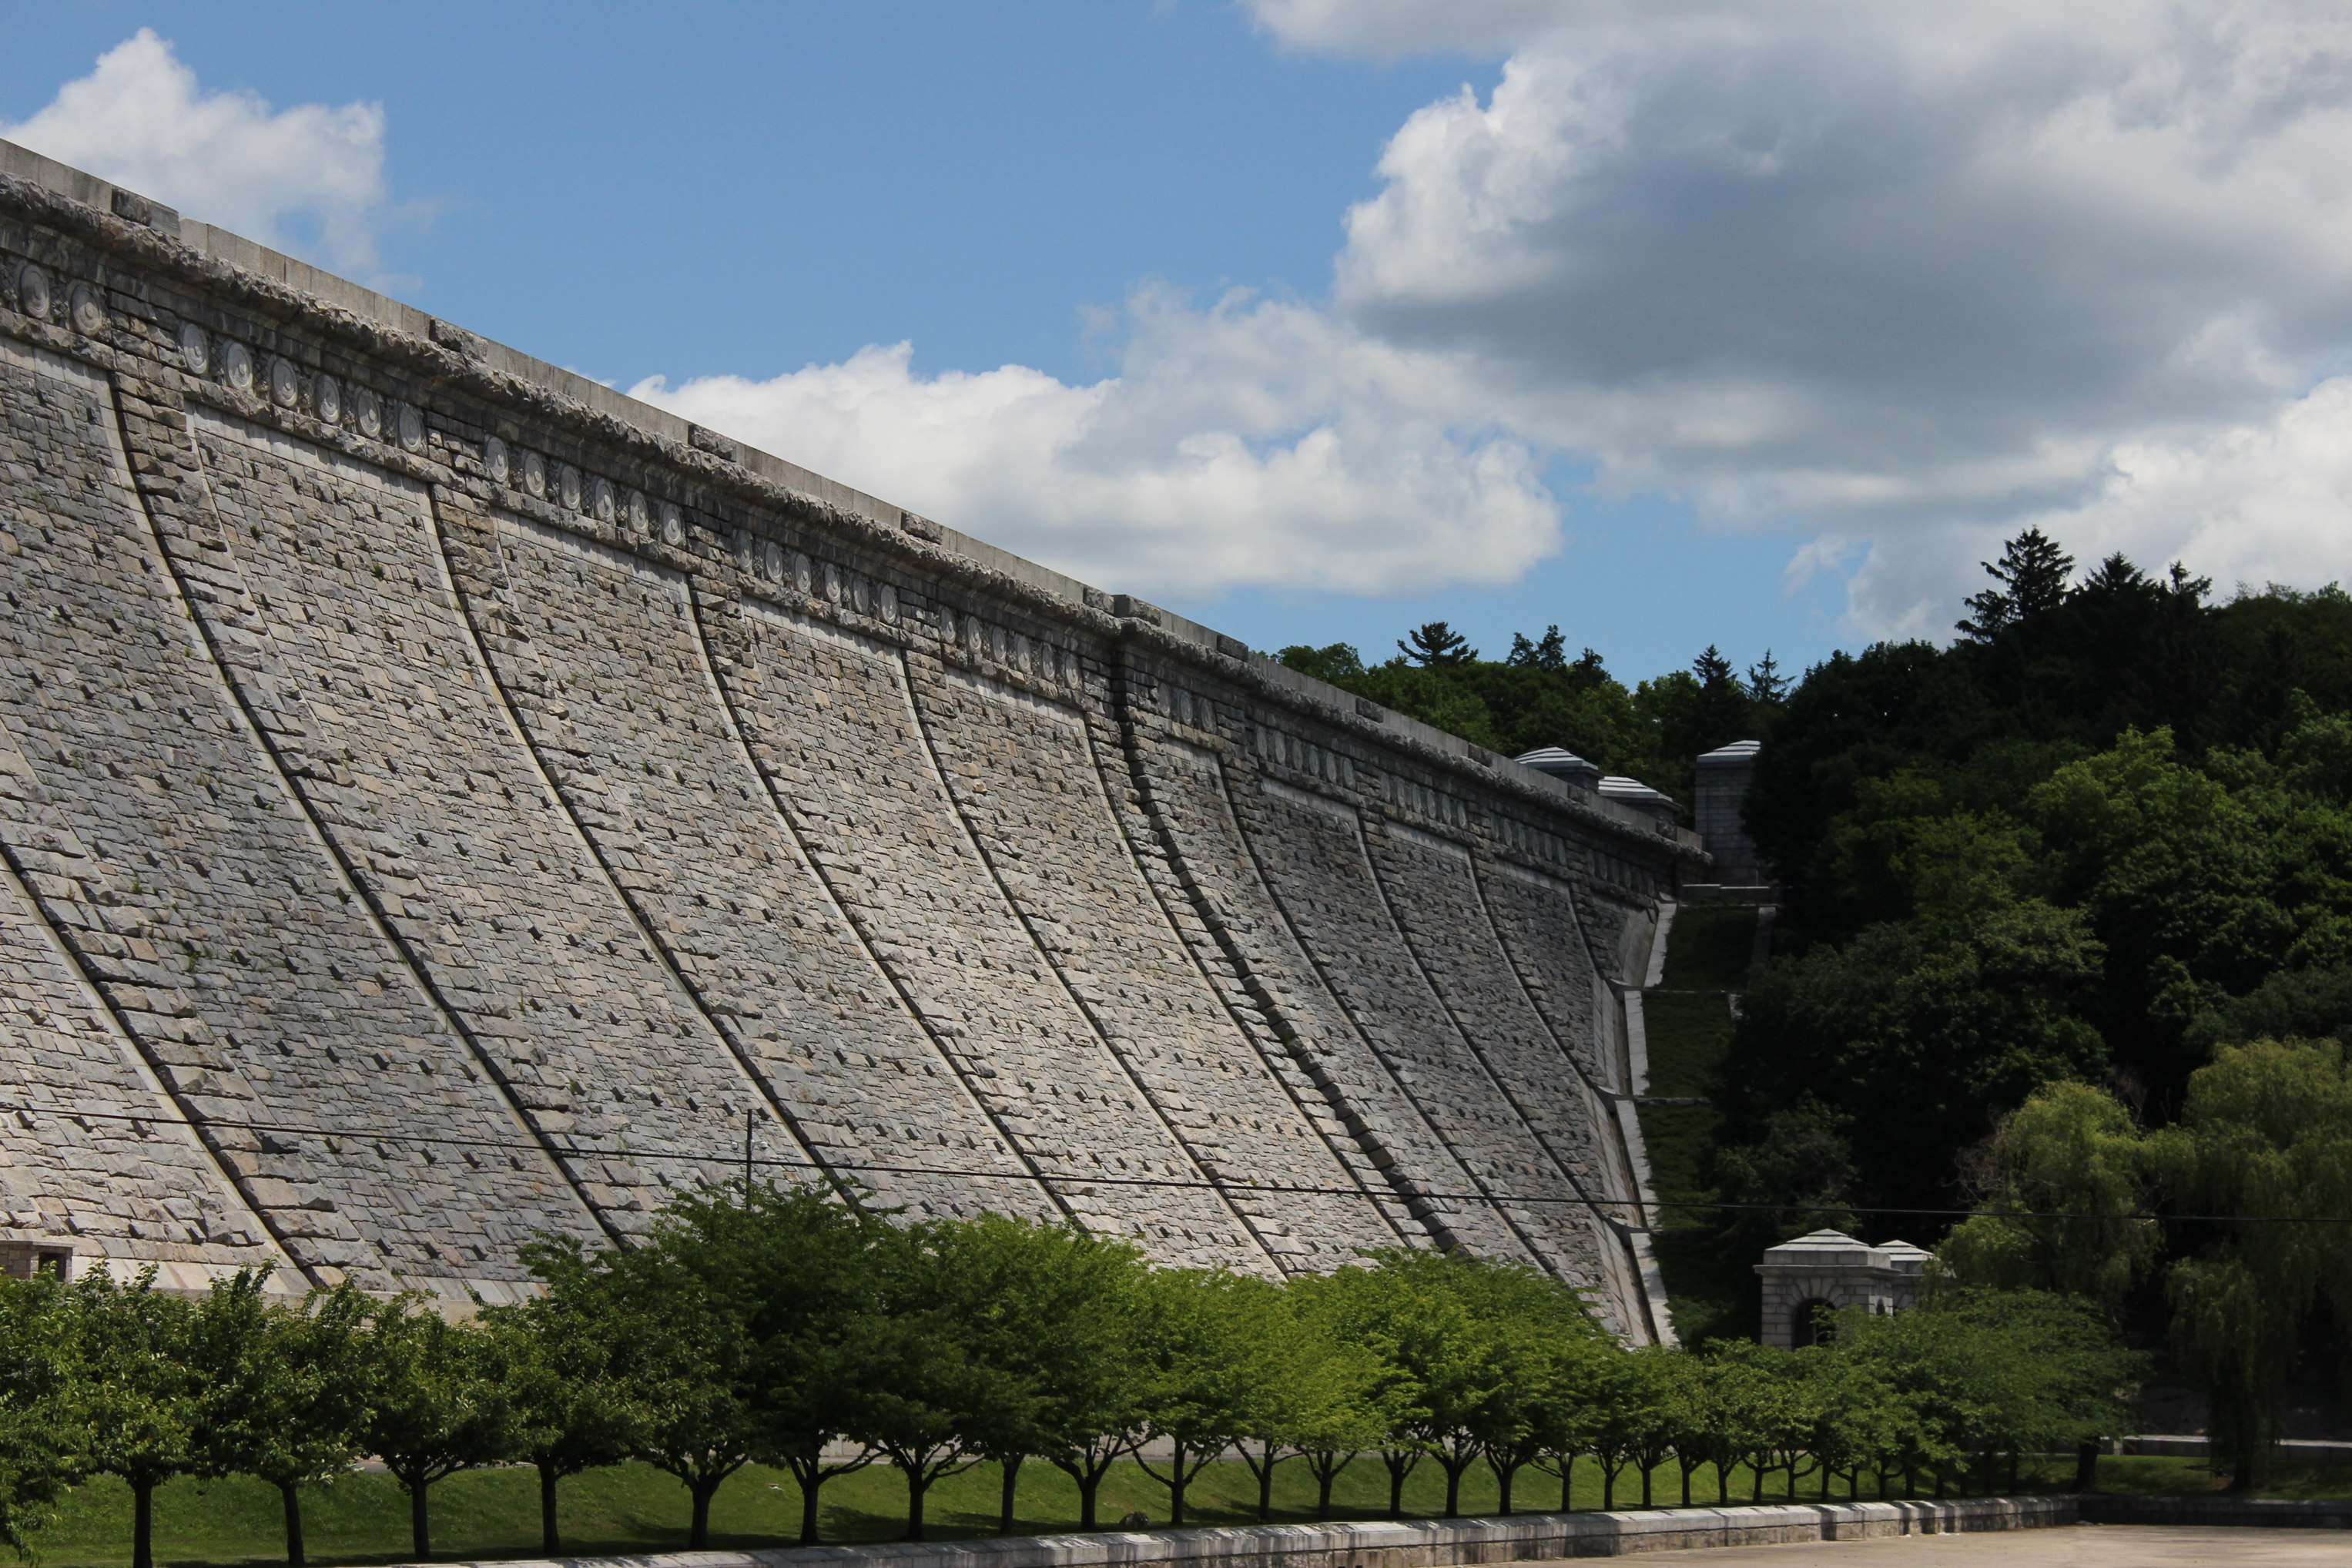 Kensico Dam in Westchester County, NY. Source: Wikimedia Foundation